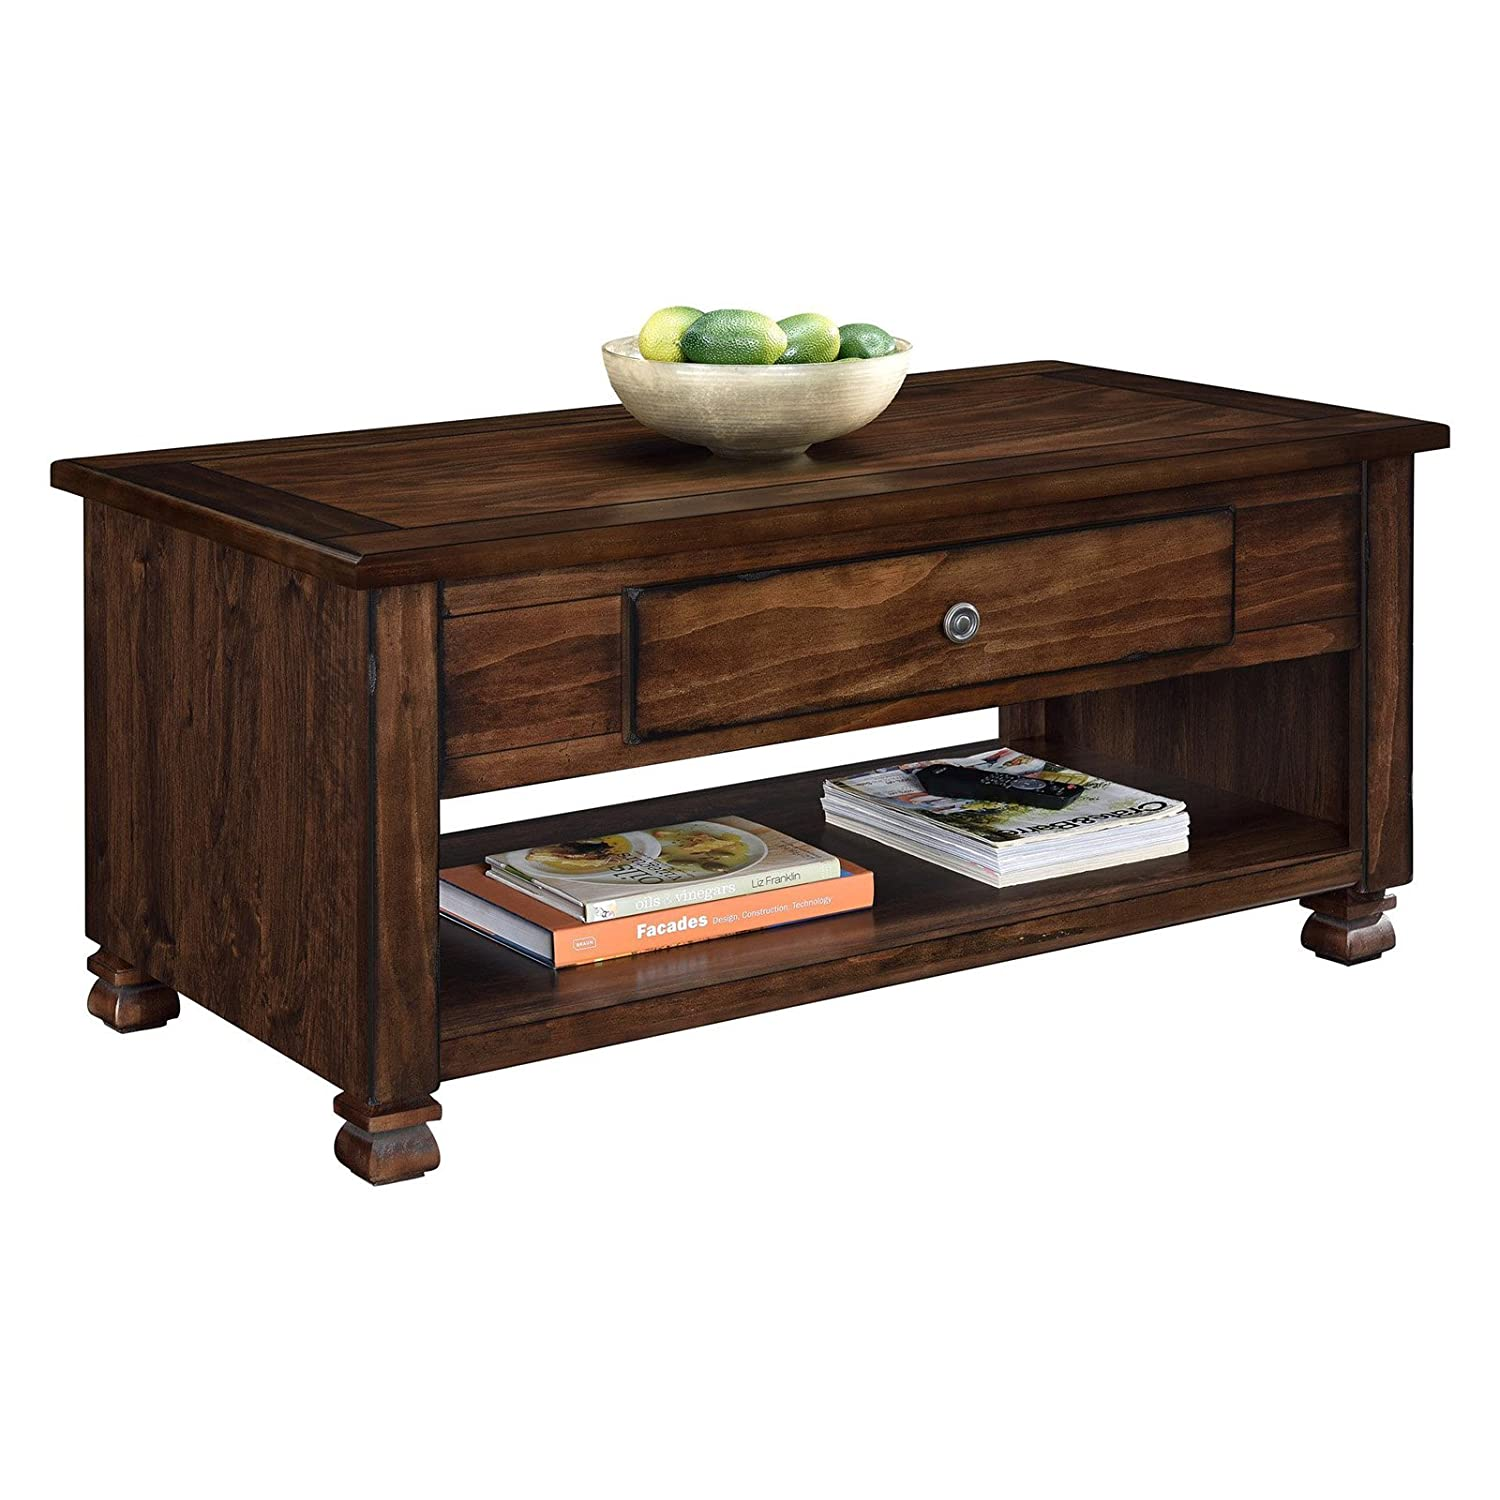 Wood veneer coffee table espresso finish rectangle shape living room furniture solid wood carved legs profiled edges drawer bundle with our expert